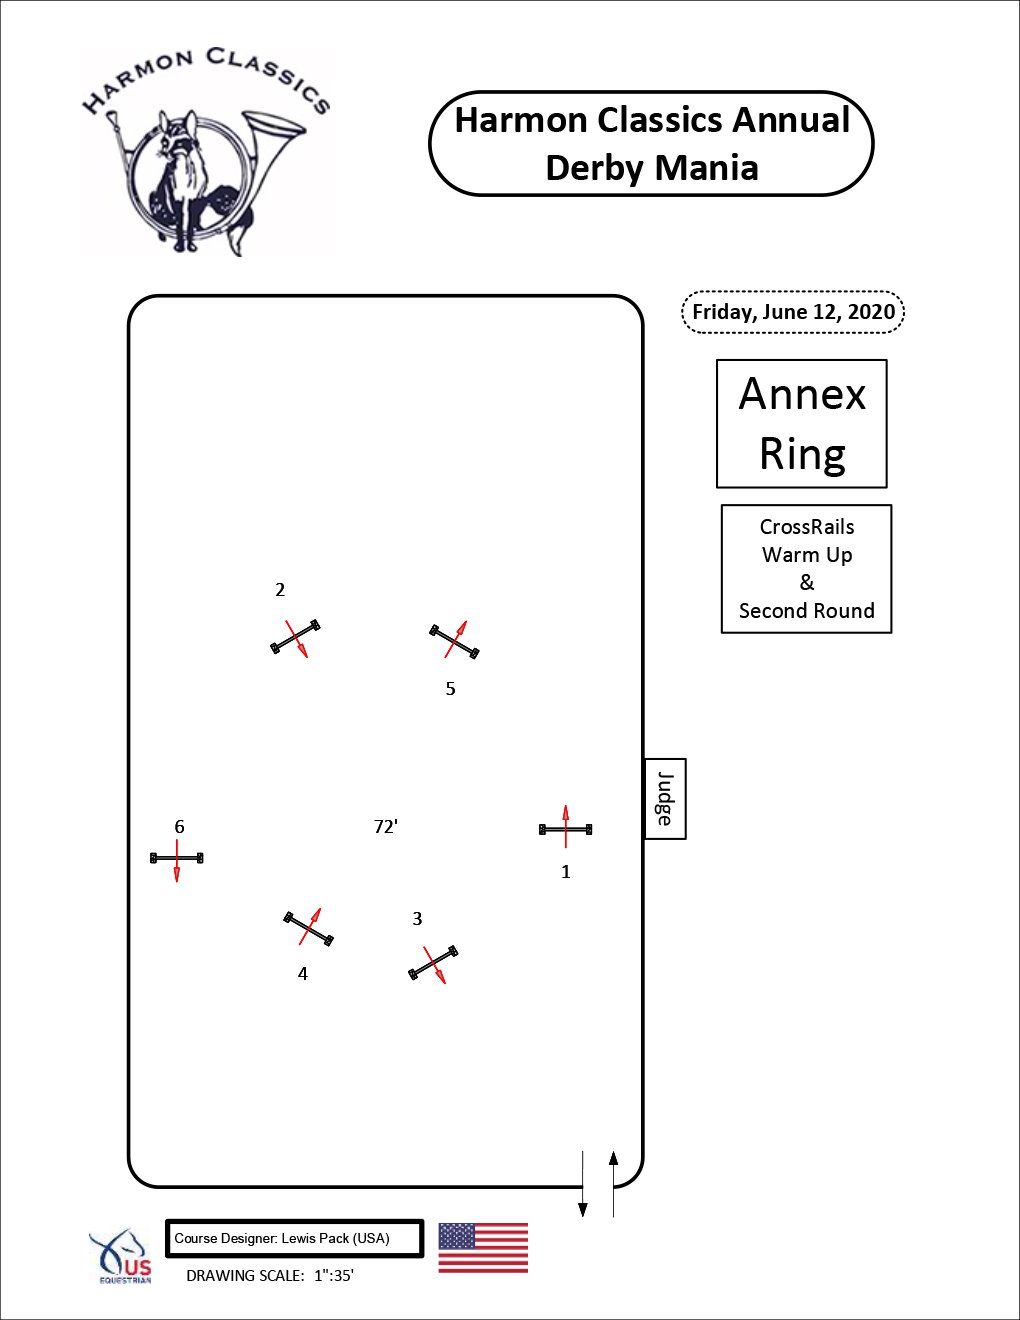 Annex-Ring-Friday6-12-Crossrails-Warm-Up-and-Second-Round-Harmon-Classics-Derby-Mania